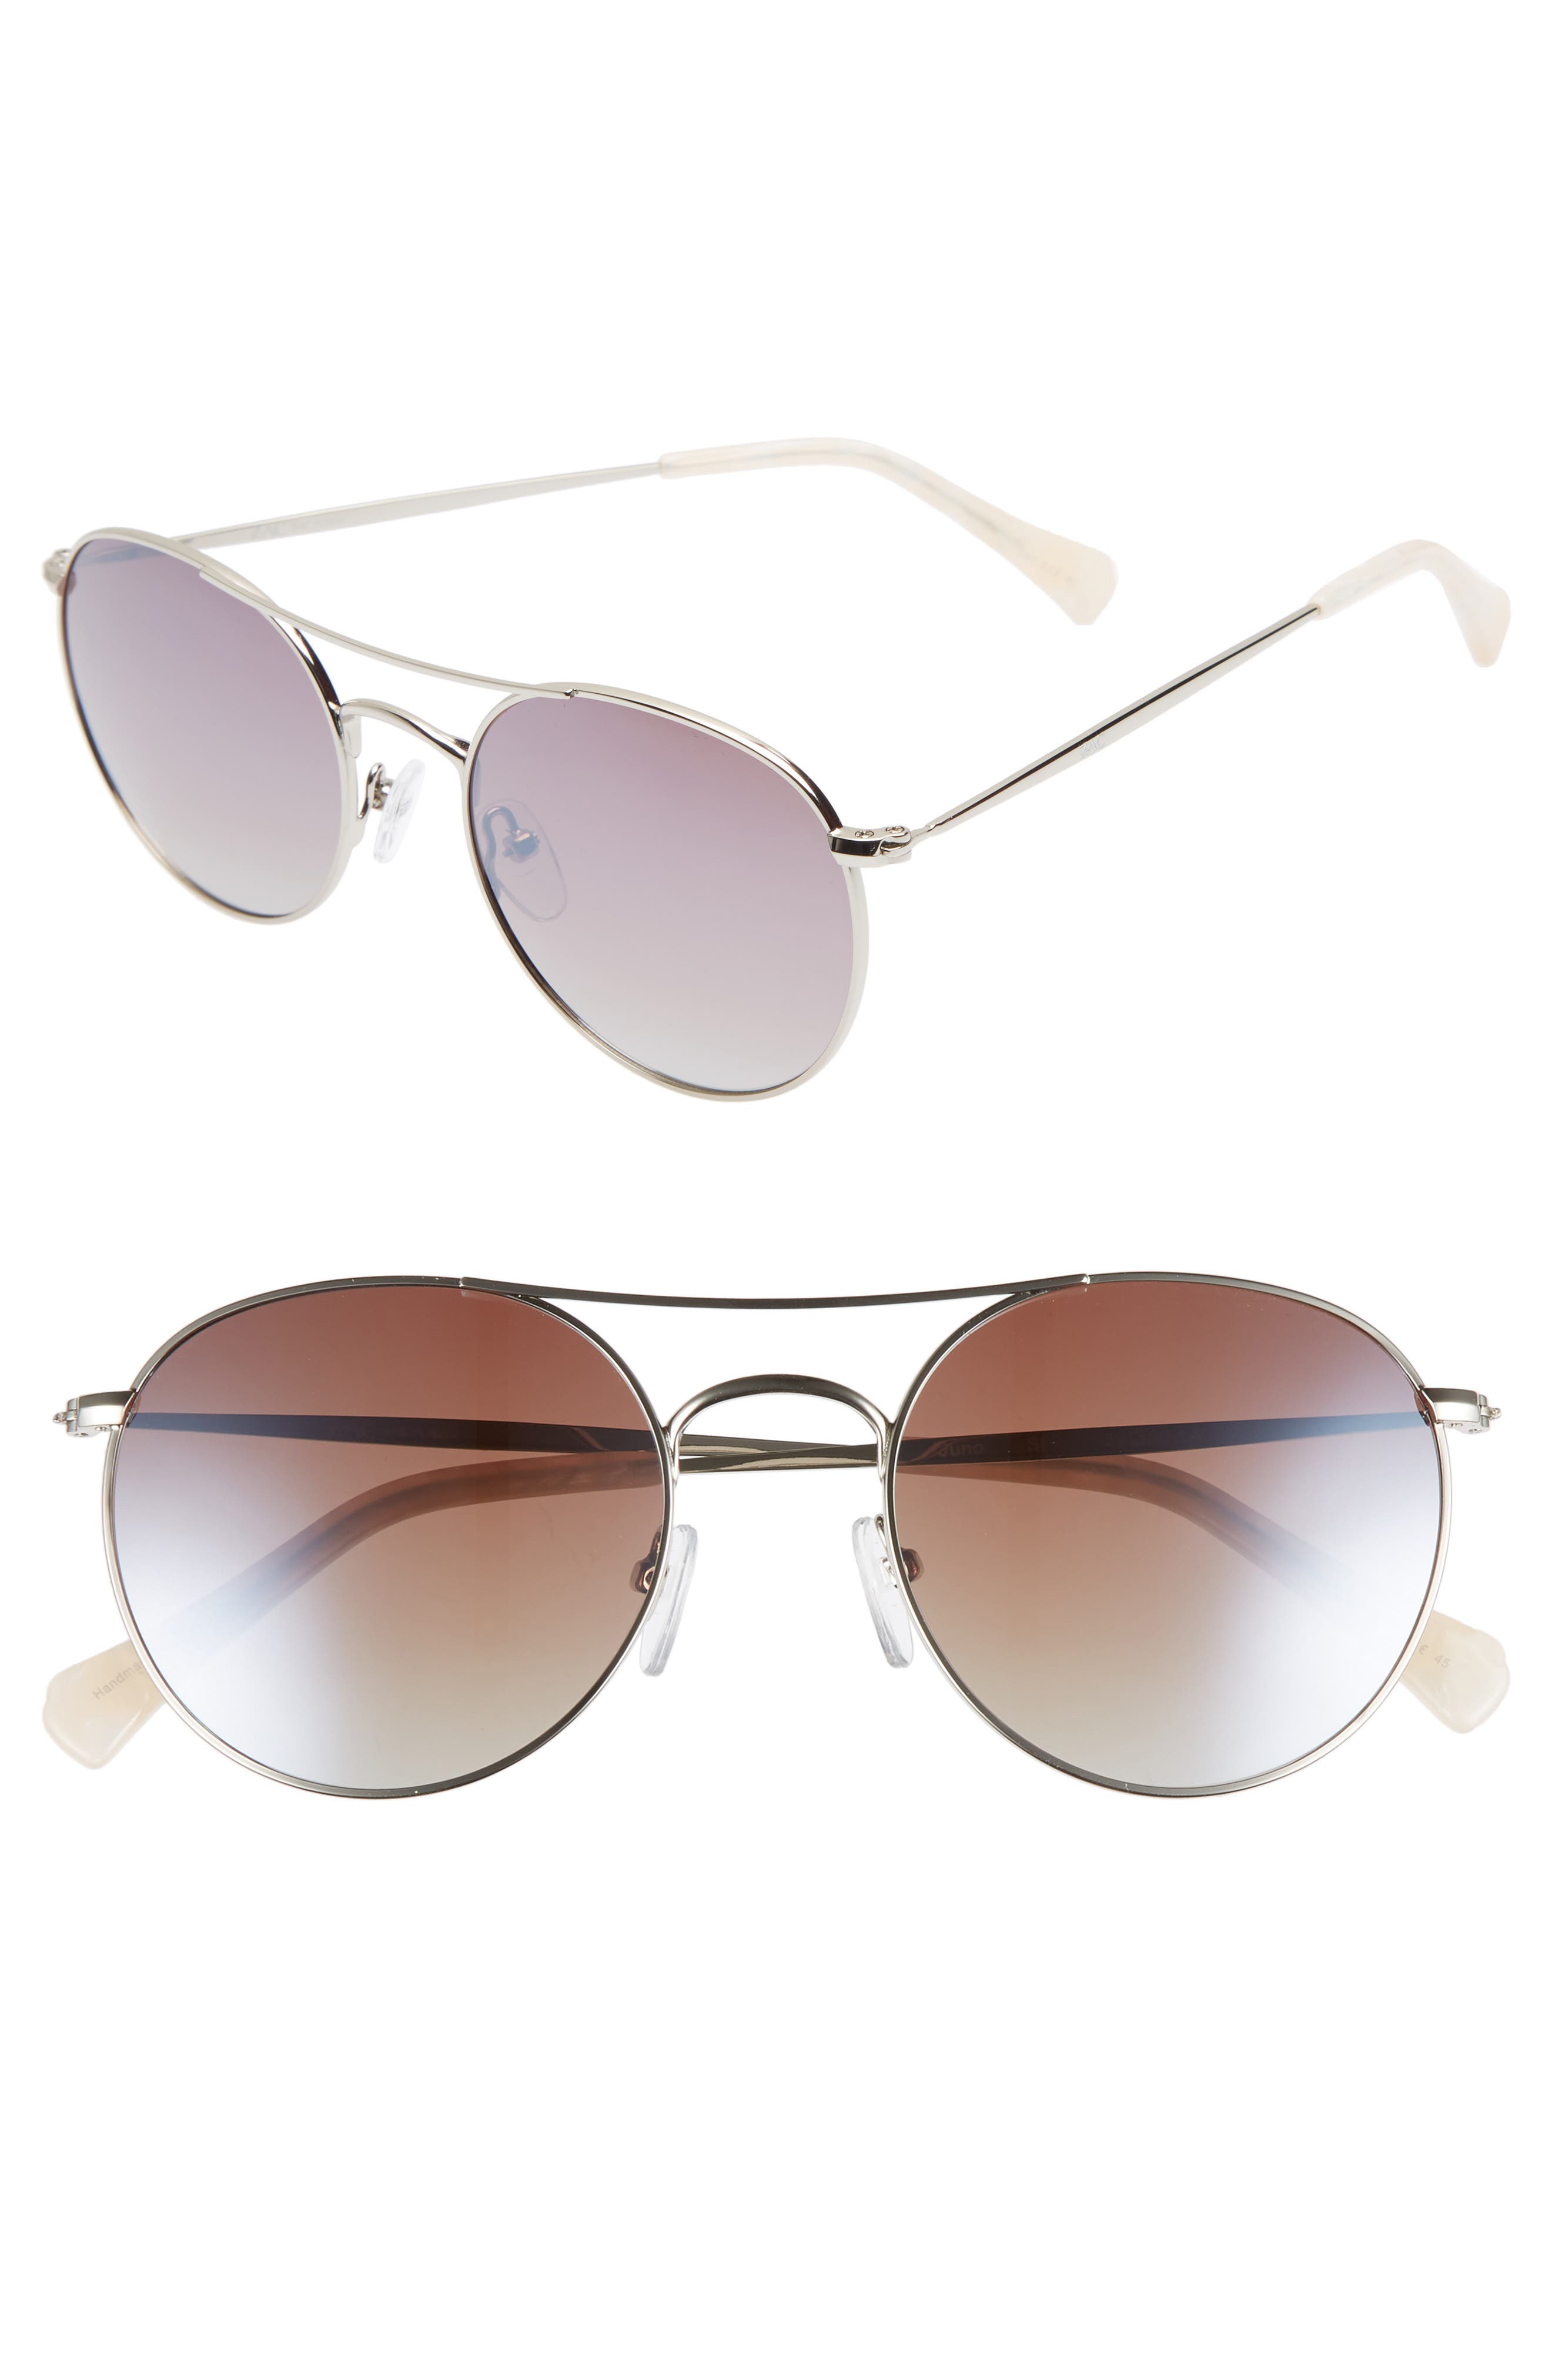 Juno 52mm Polarized Metal Aviator Sunglasses,                             Main thumbnail 1, color,                             SILVER POLAR/ BROWN